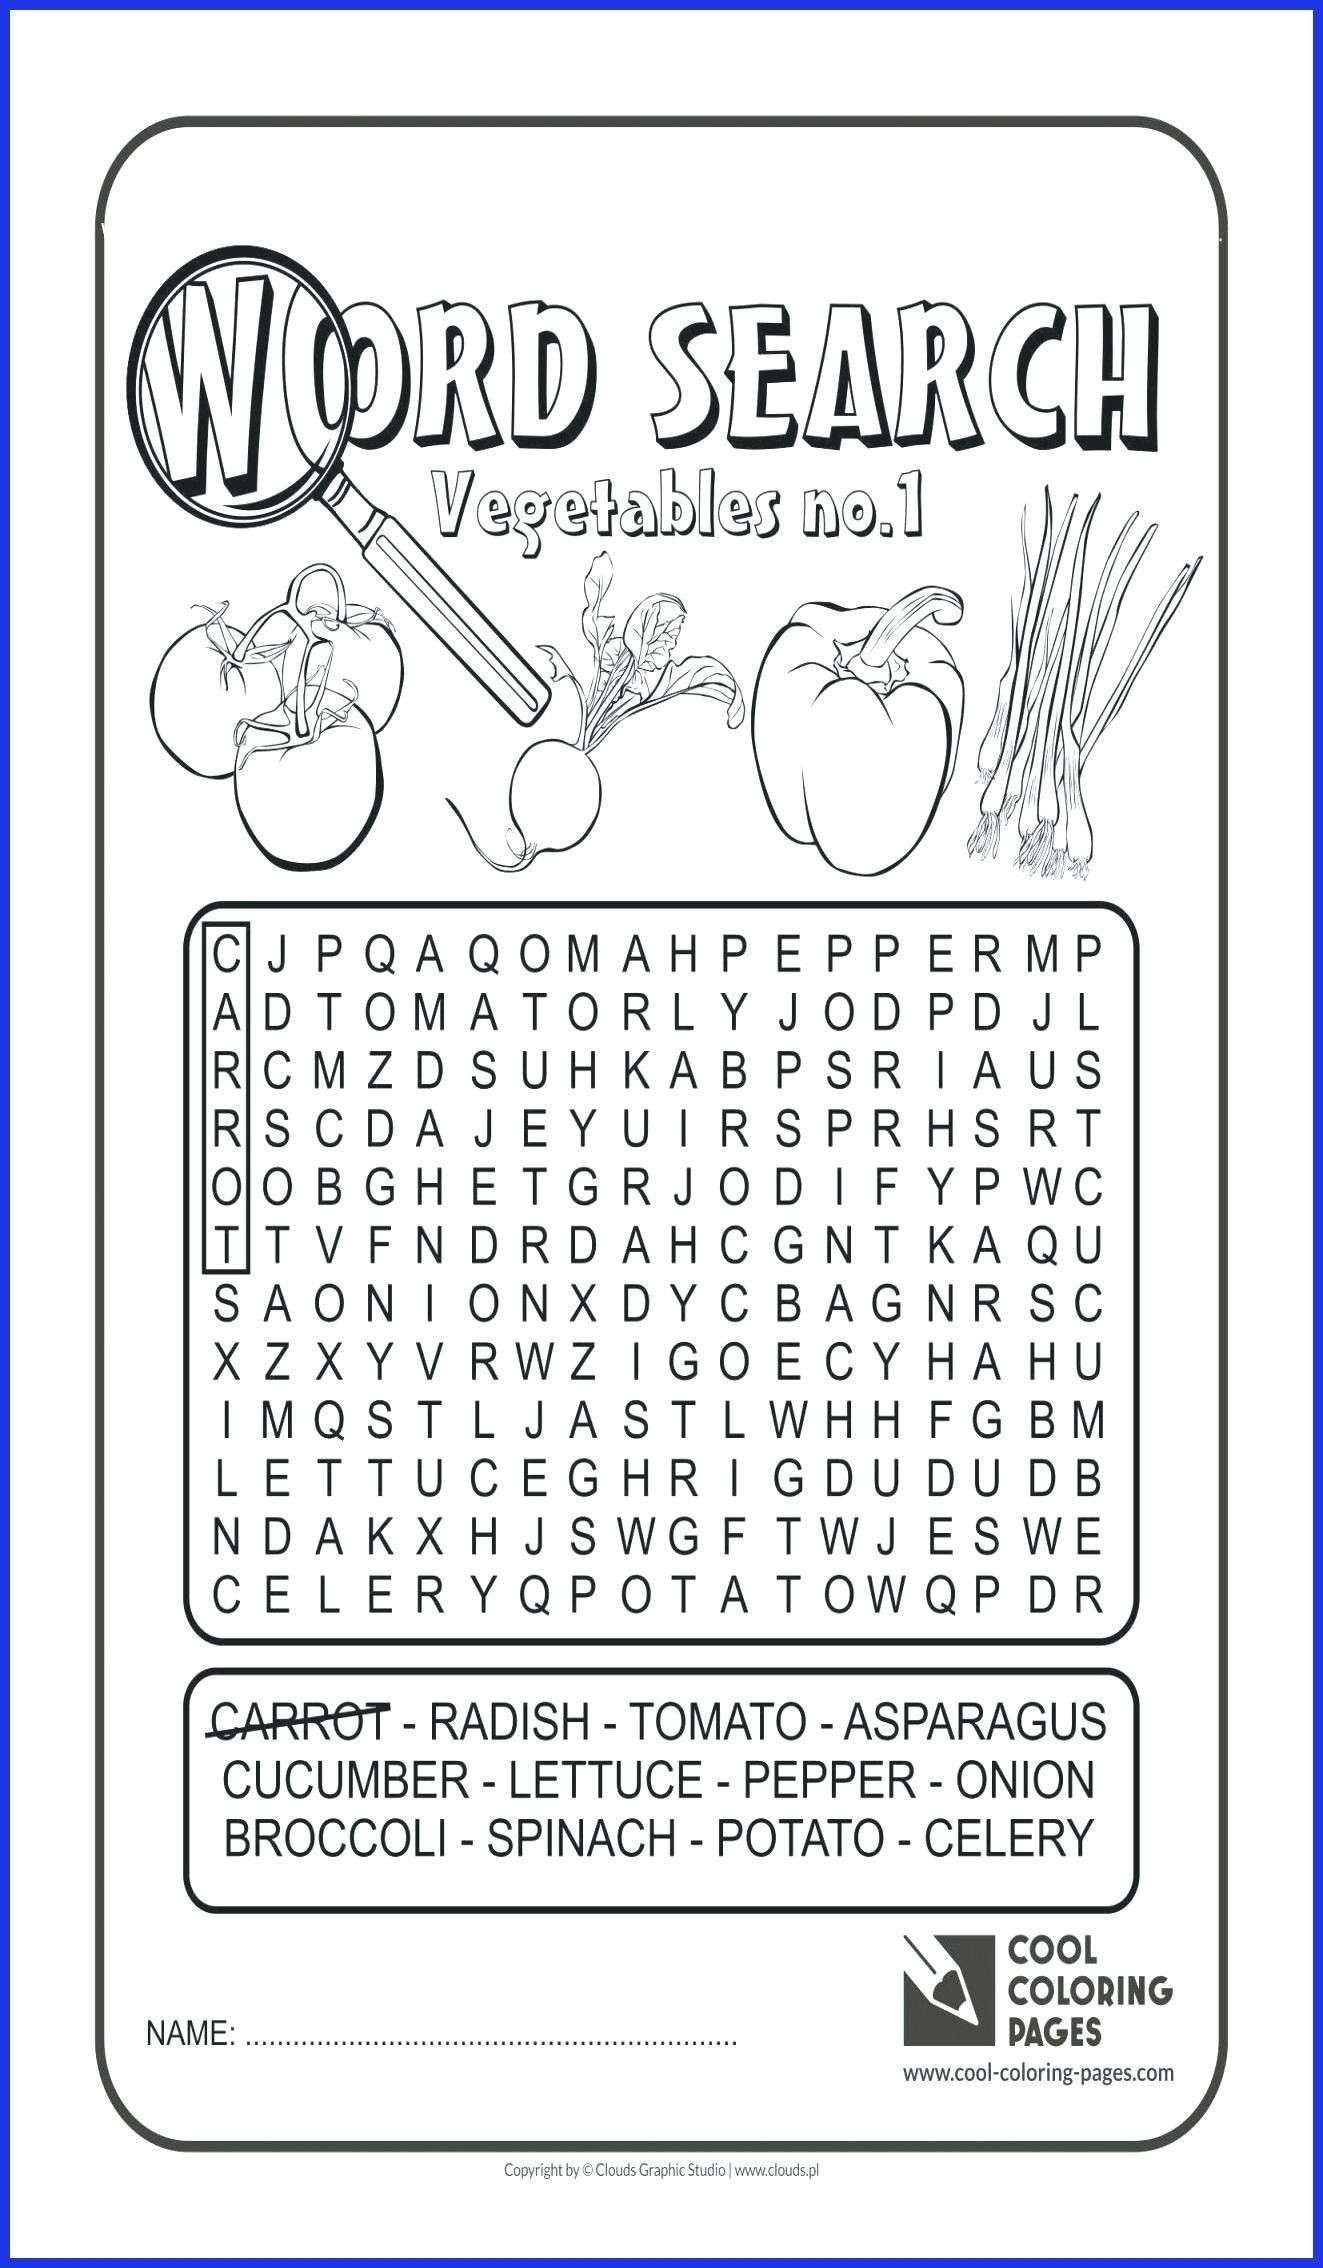 Proofreading Worksheets 3rd Grade Math Coloring Worksheets 3rd Grade Awesome Y Worksheets Math